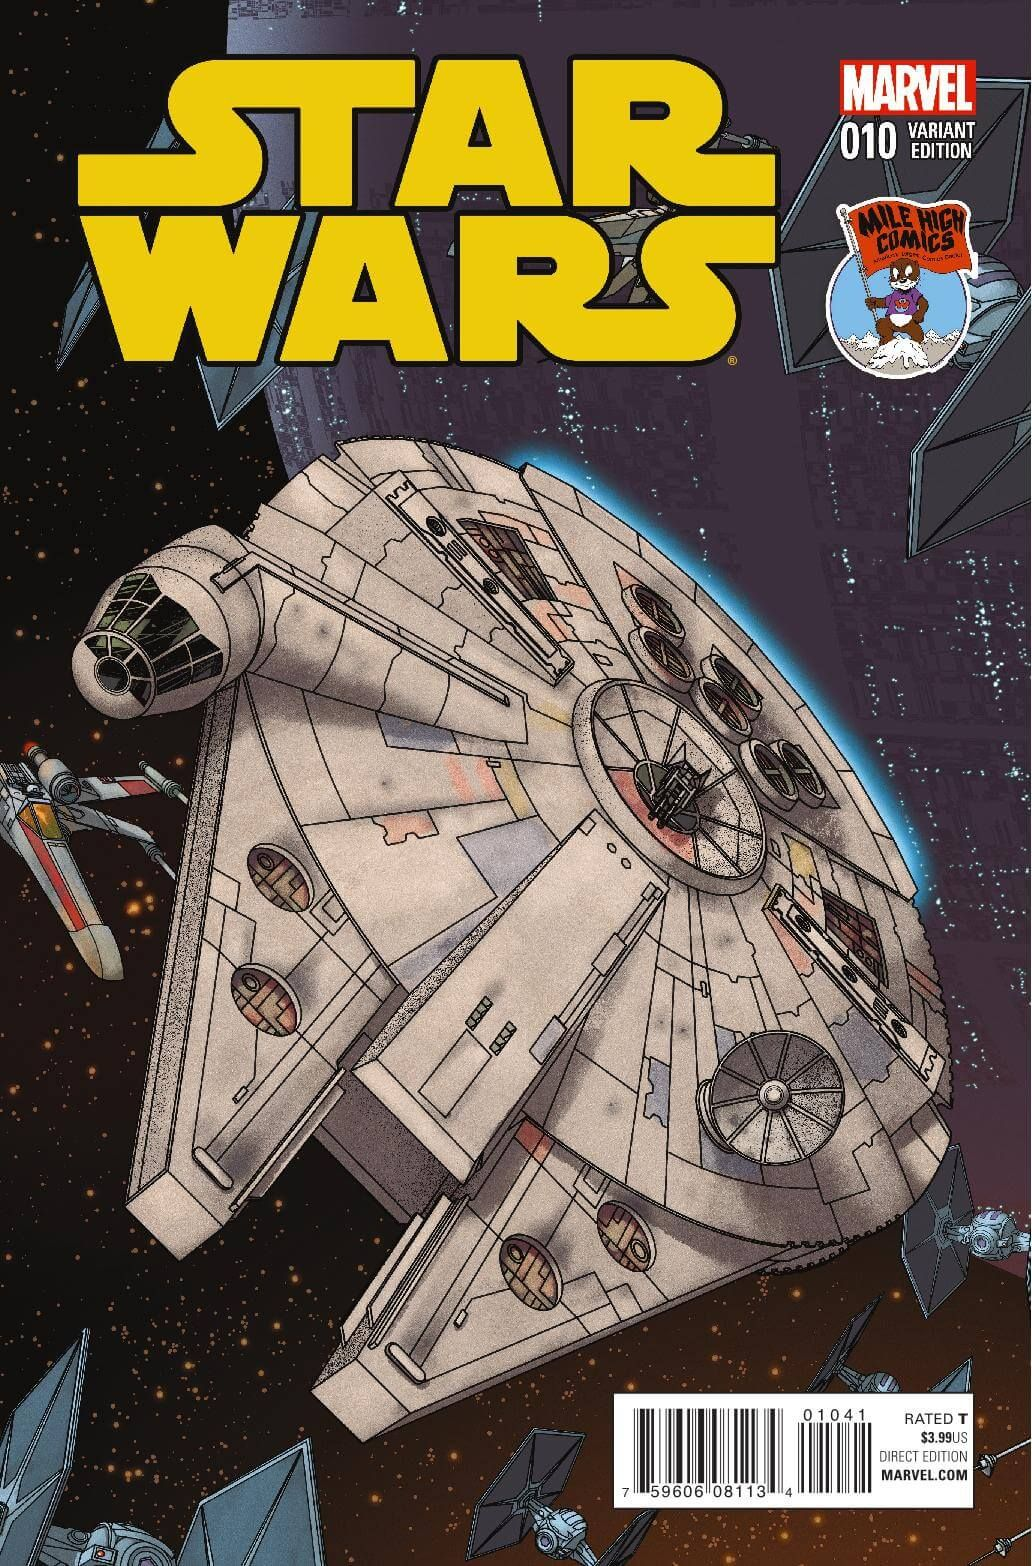 Preview: Star Wars #10,   Star Wars #10 Story: Jason Aaron Art: Stuart Immonen Covers: Stuart Immonen & John Tyler Christopher Publisher: Marvel Publication Date: ...,  #All-Comic #All-ComicPreviews #Comics #JasonAaron #JohnTylerChristopher #Marvel #previews #StarWars #StuartImmonen